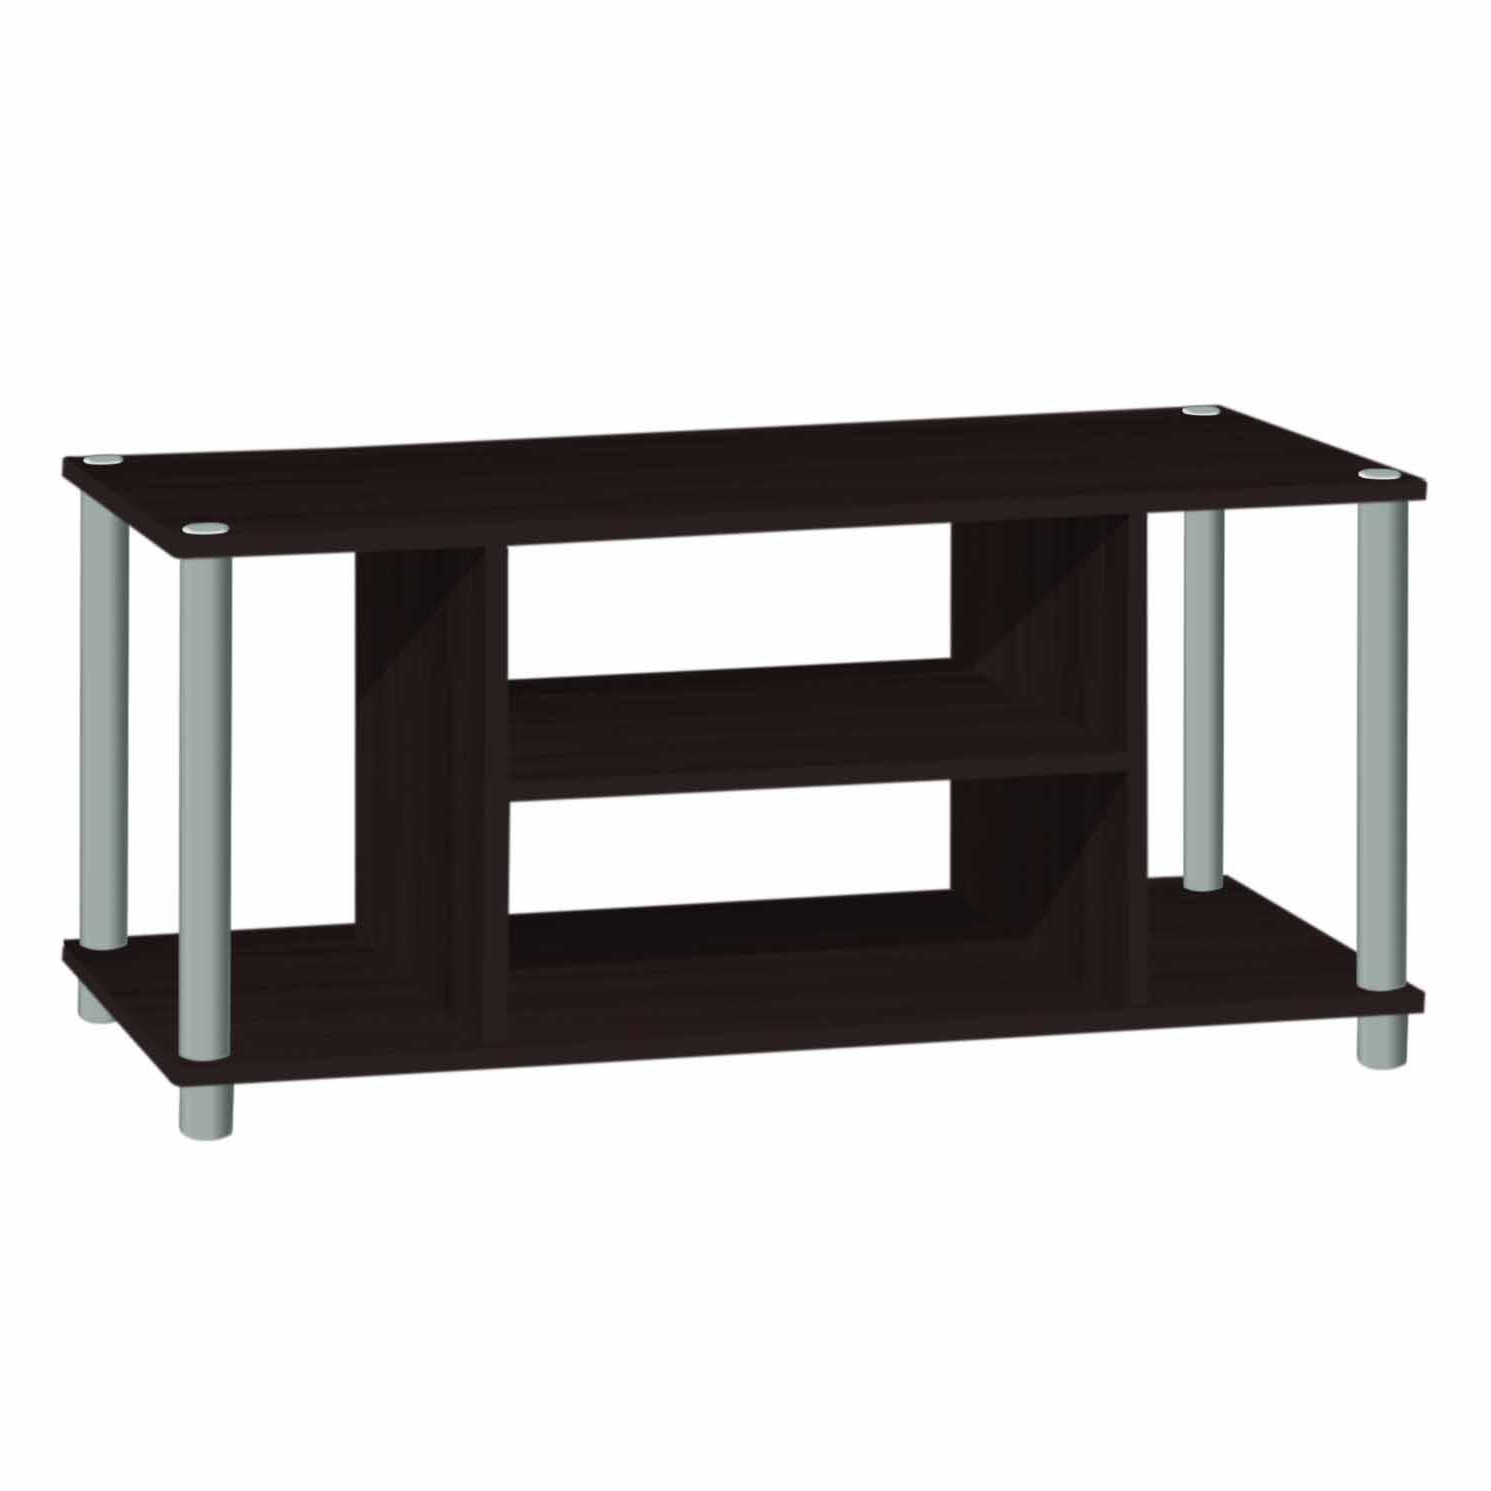 Cheap Tv Tables Throughout Popular Tv Rack For Sale – Tv Cabinet Prices, Brands & Review In Philippines (View 13 of 20)